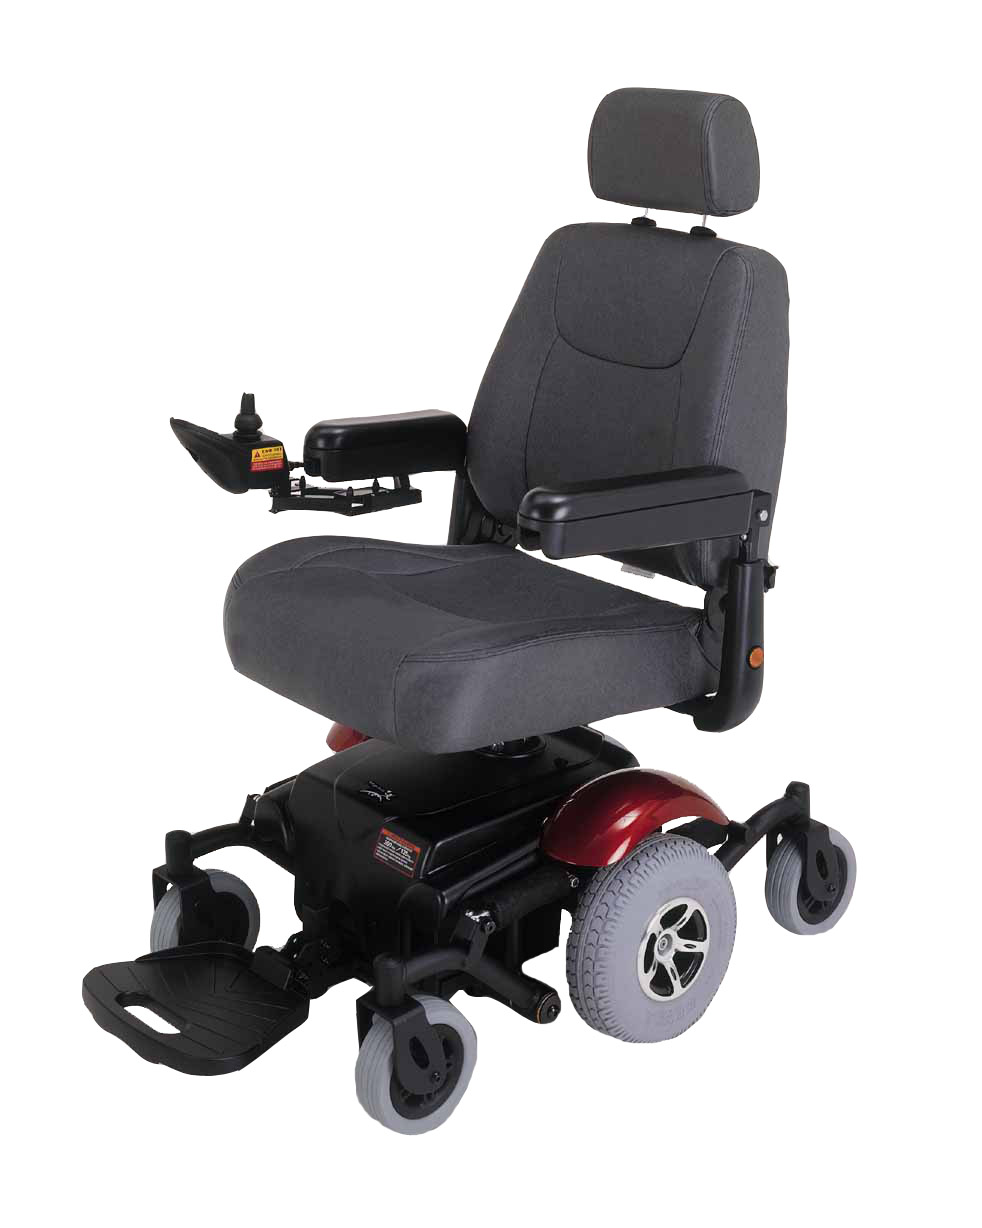 dl 5.2i electric wheel chair, electric wheel chair trays, ihow to operate an electric wheel chair, benefits of electric wheelchairs